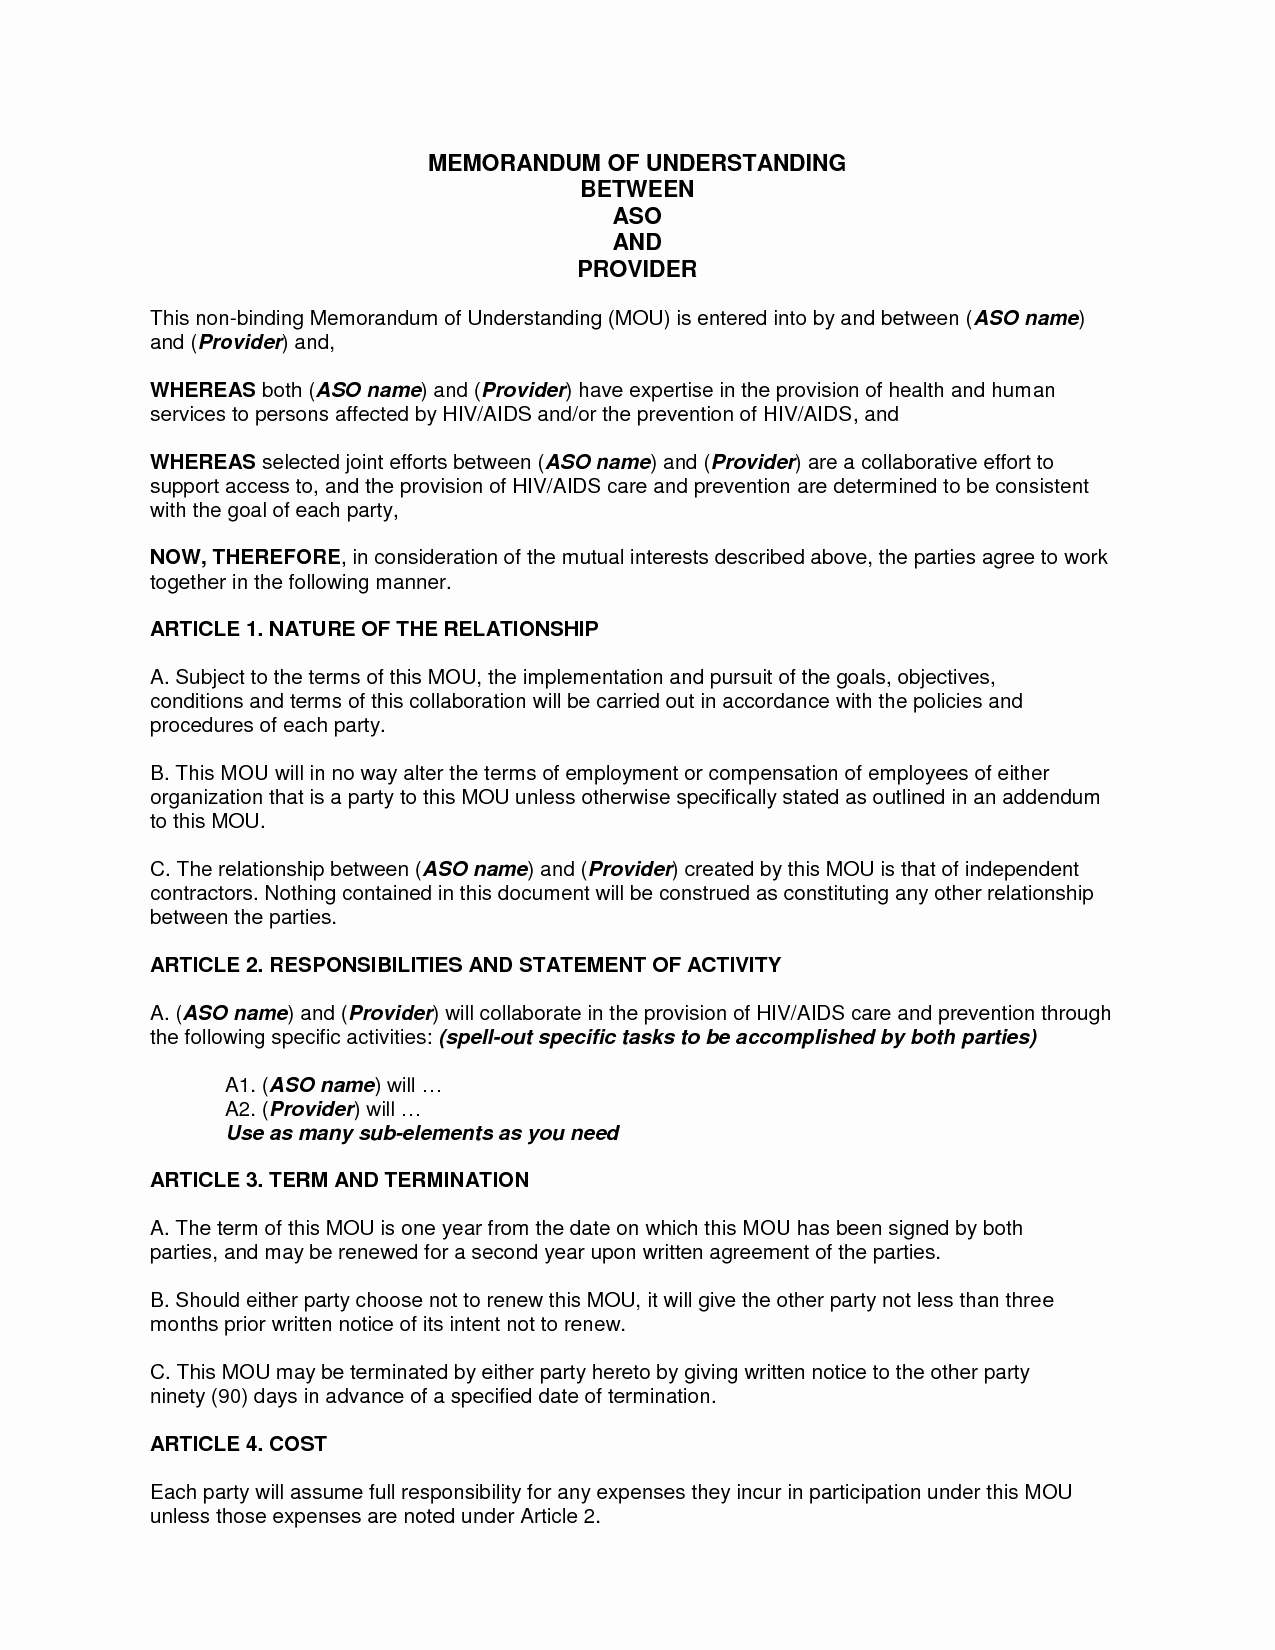 Letter Of Understanding Template Inspirational Letter Understanding Template